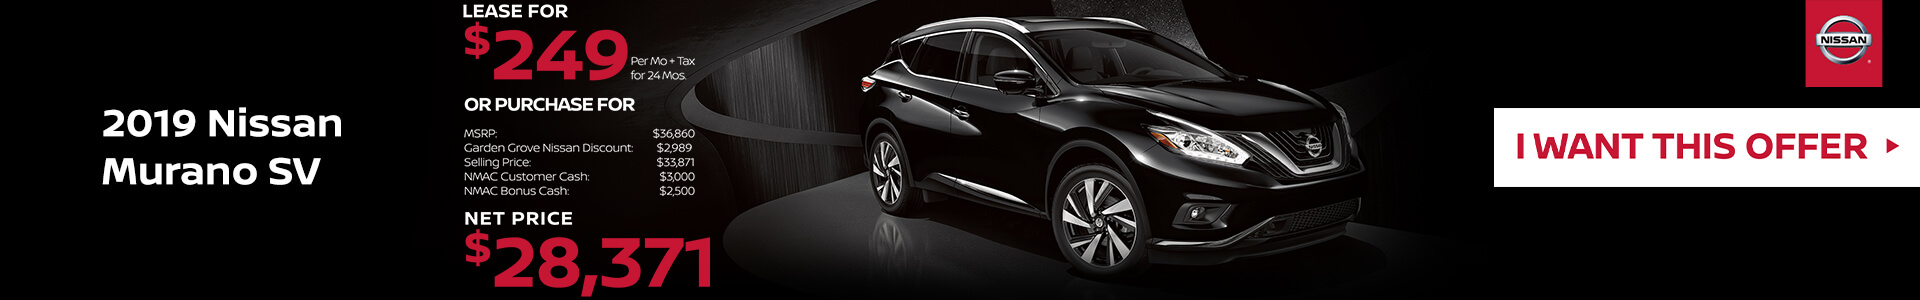 2019 Nissan Murano Lease for $2499